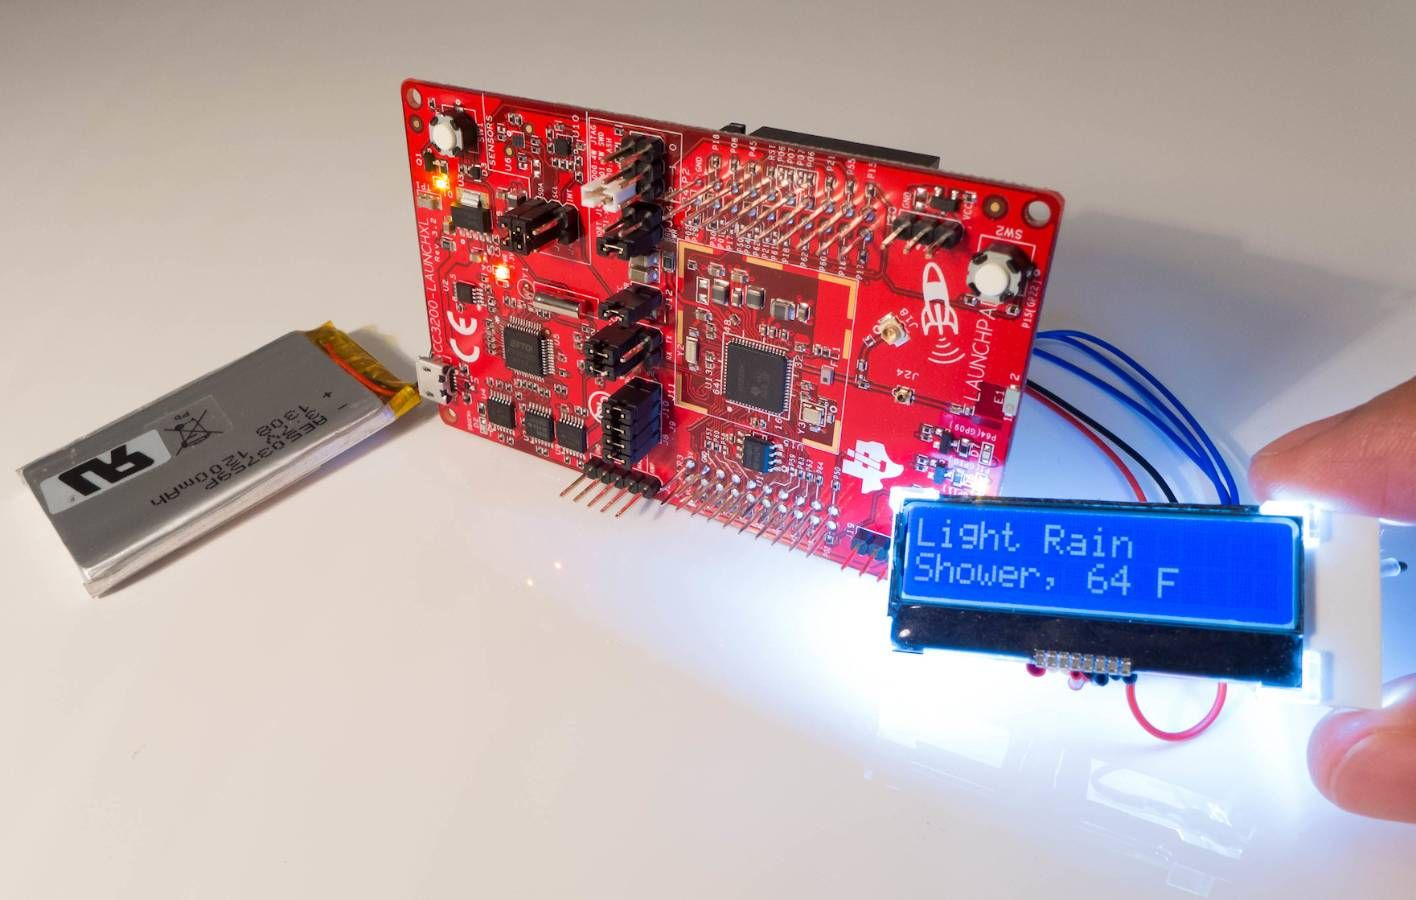 cc3200 intro element14 launchpad pinterest group internet of things and blog